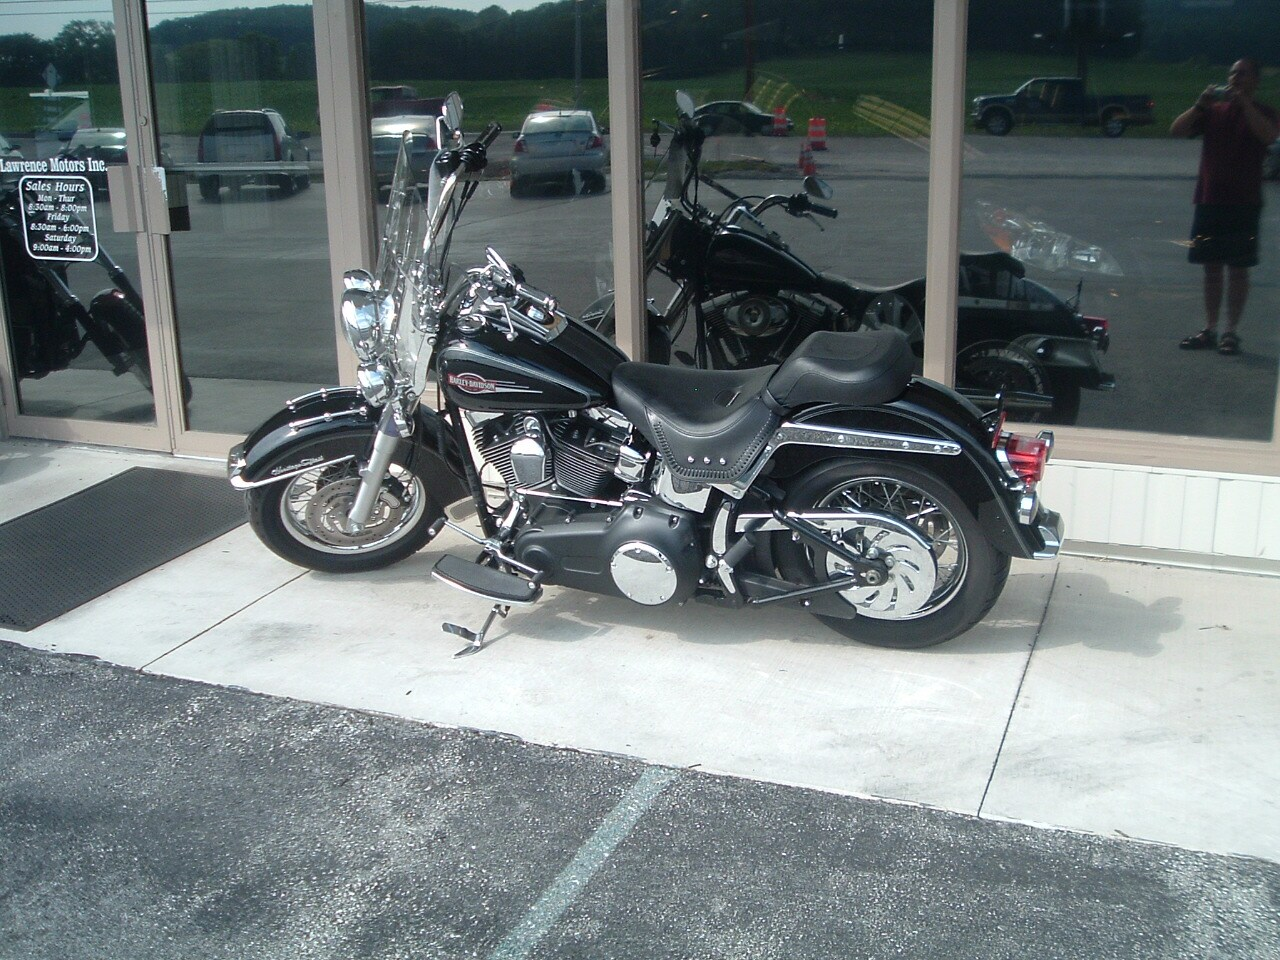 2008 Harley Davidson Heritage Soft Tail MC Commercial